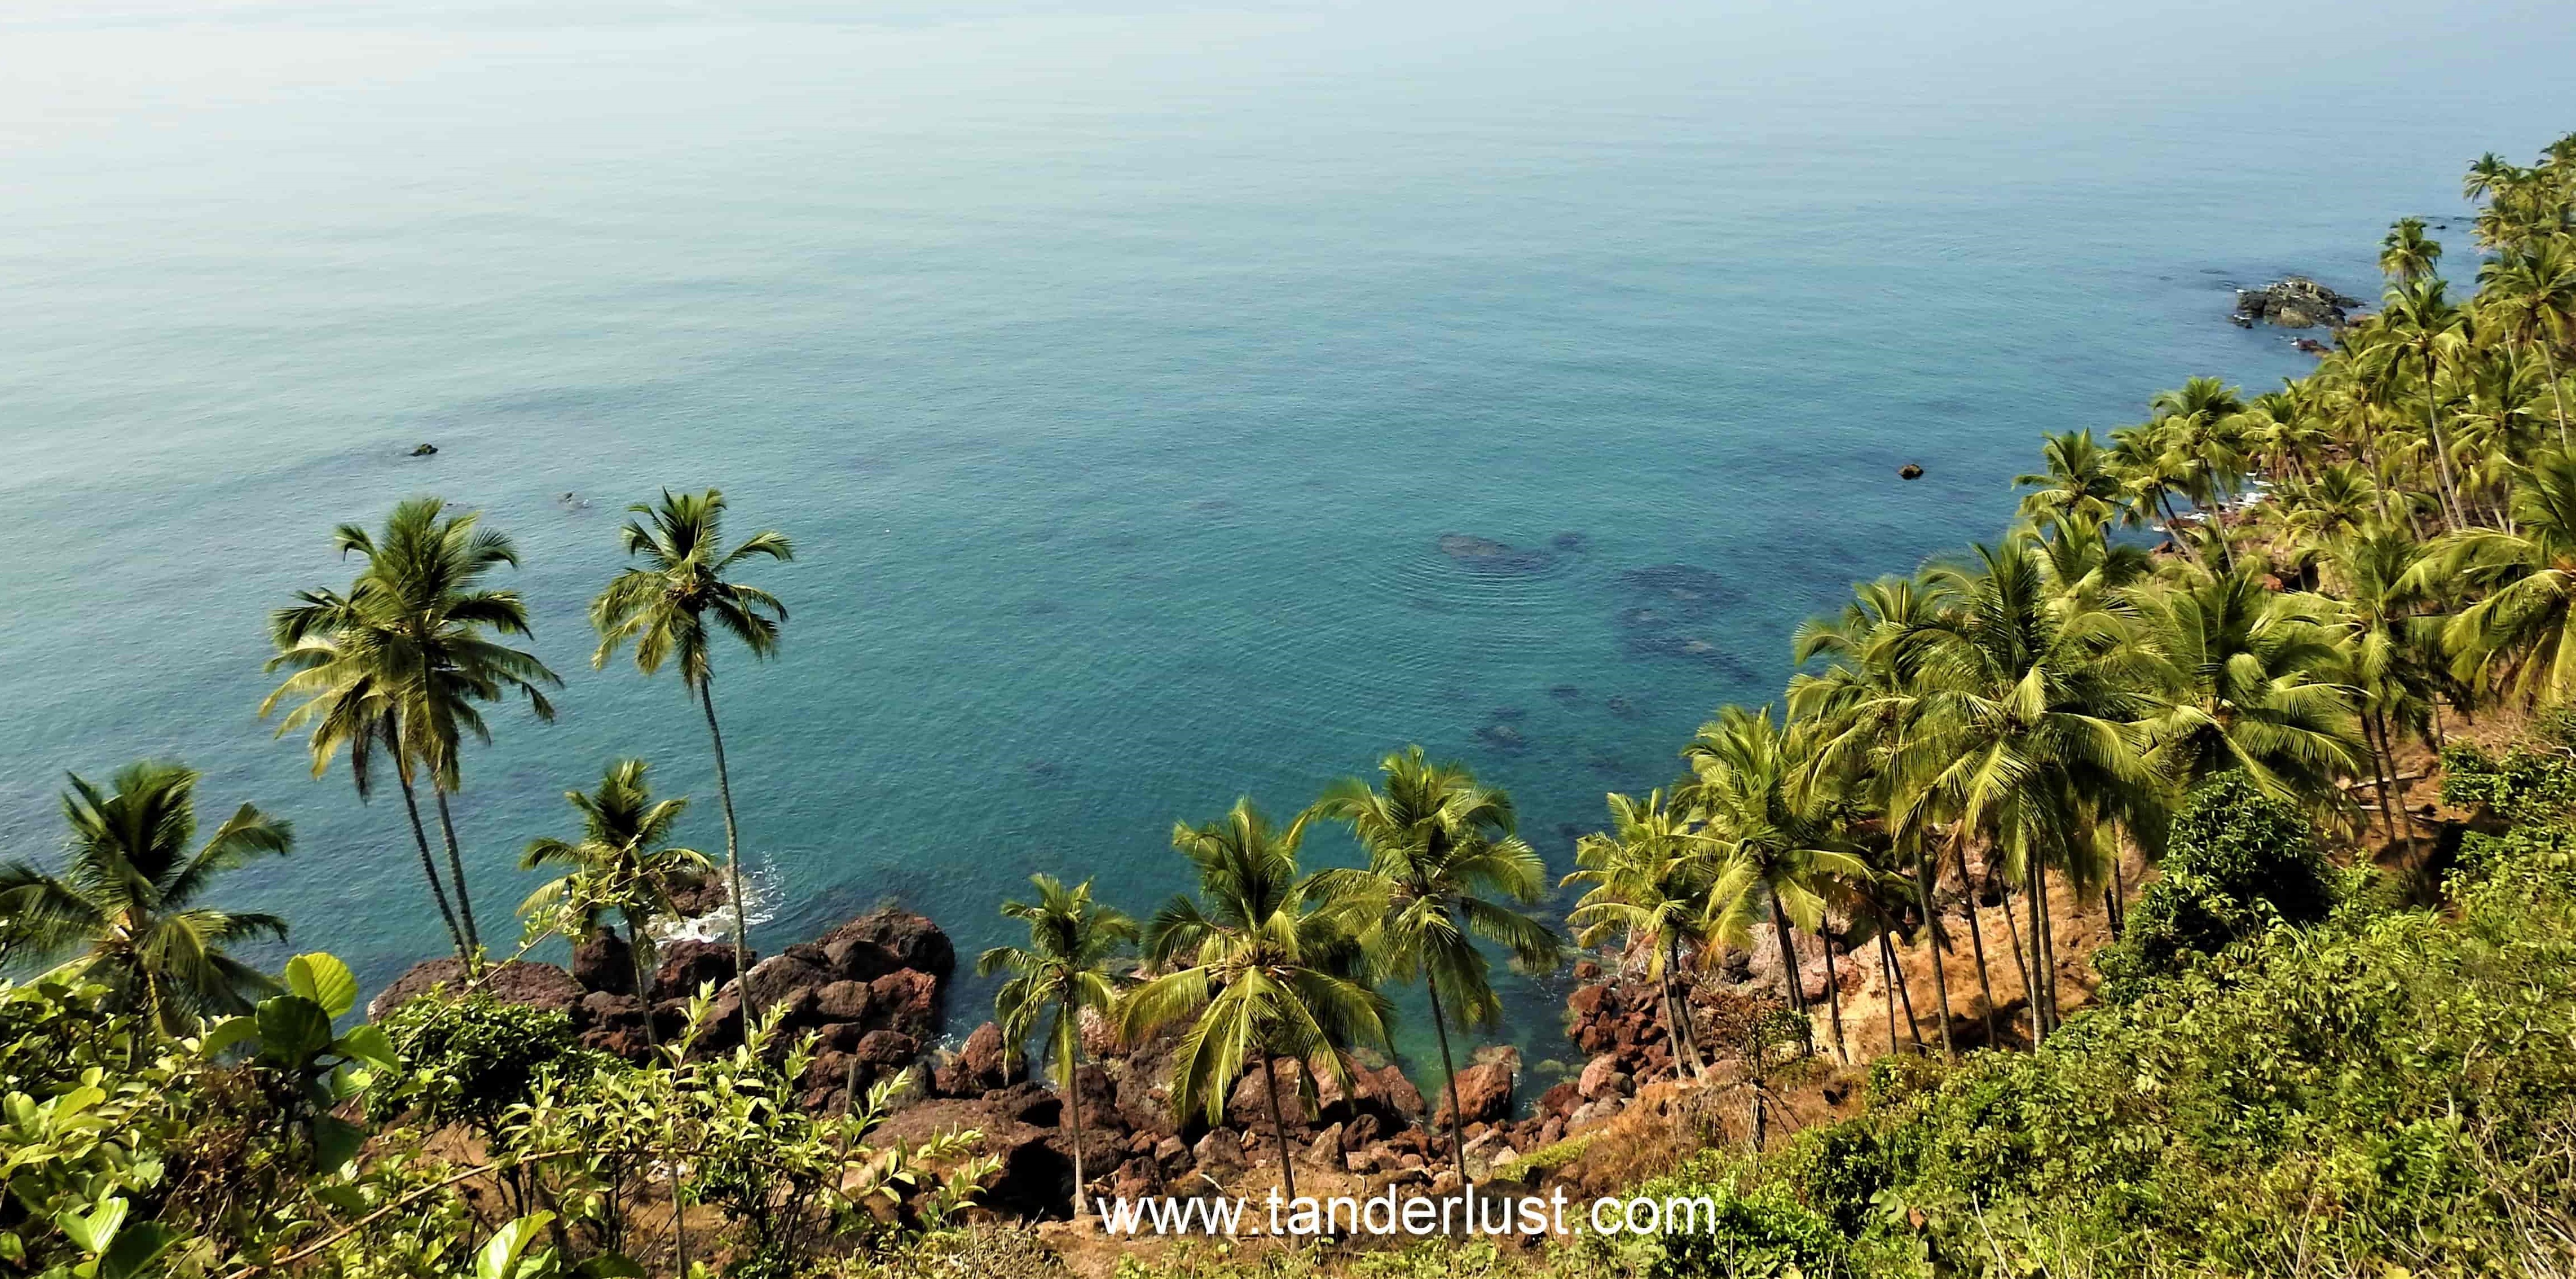 Offbeat places in Goa as recommended by a local!